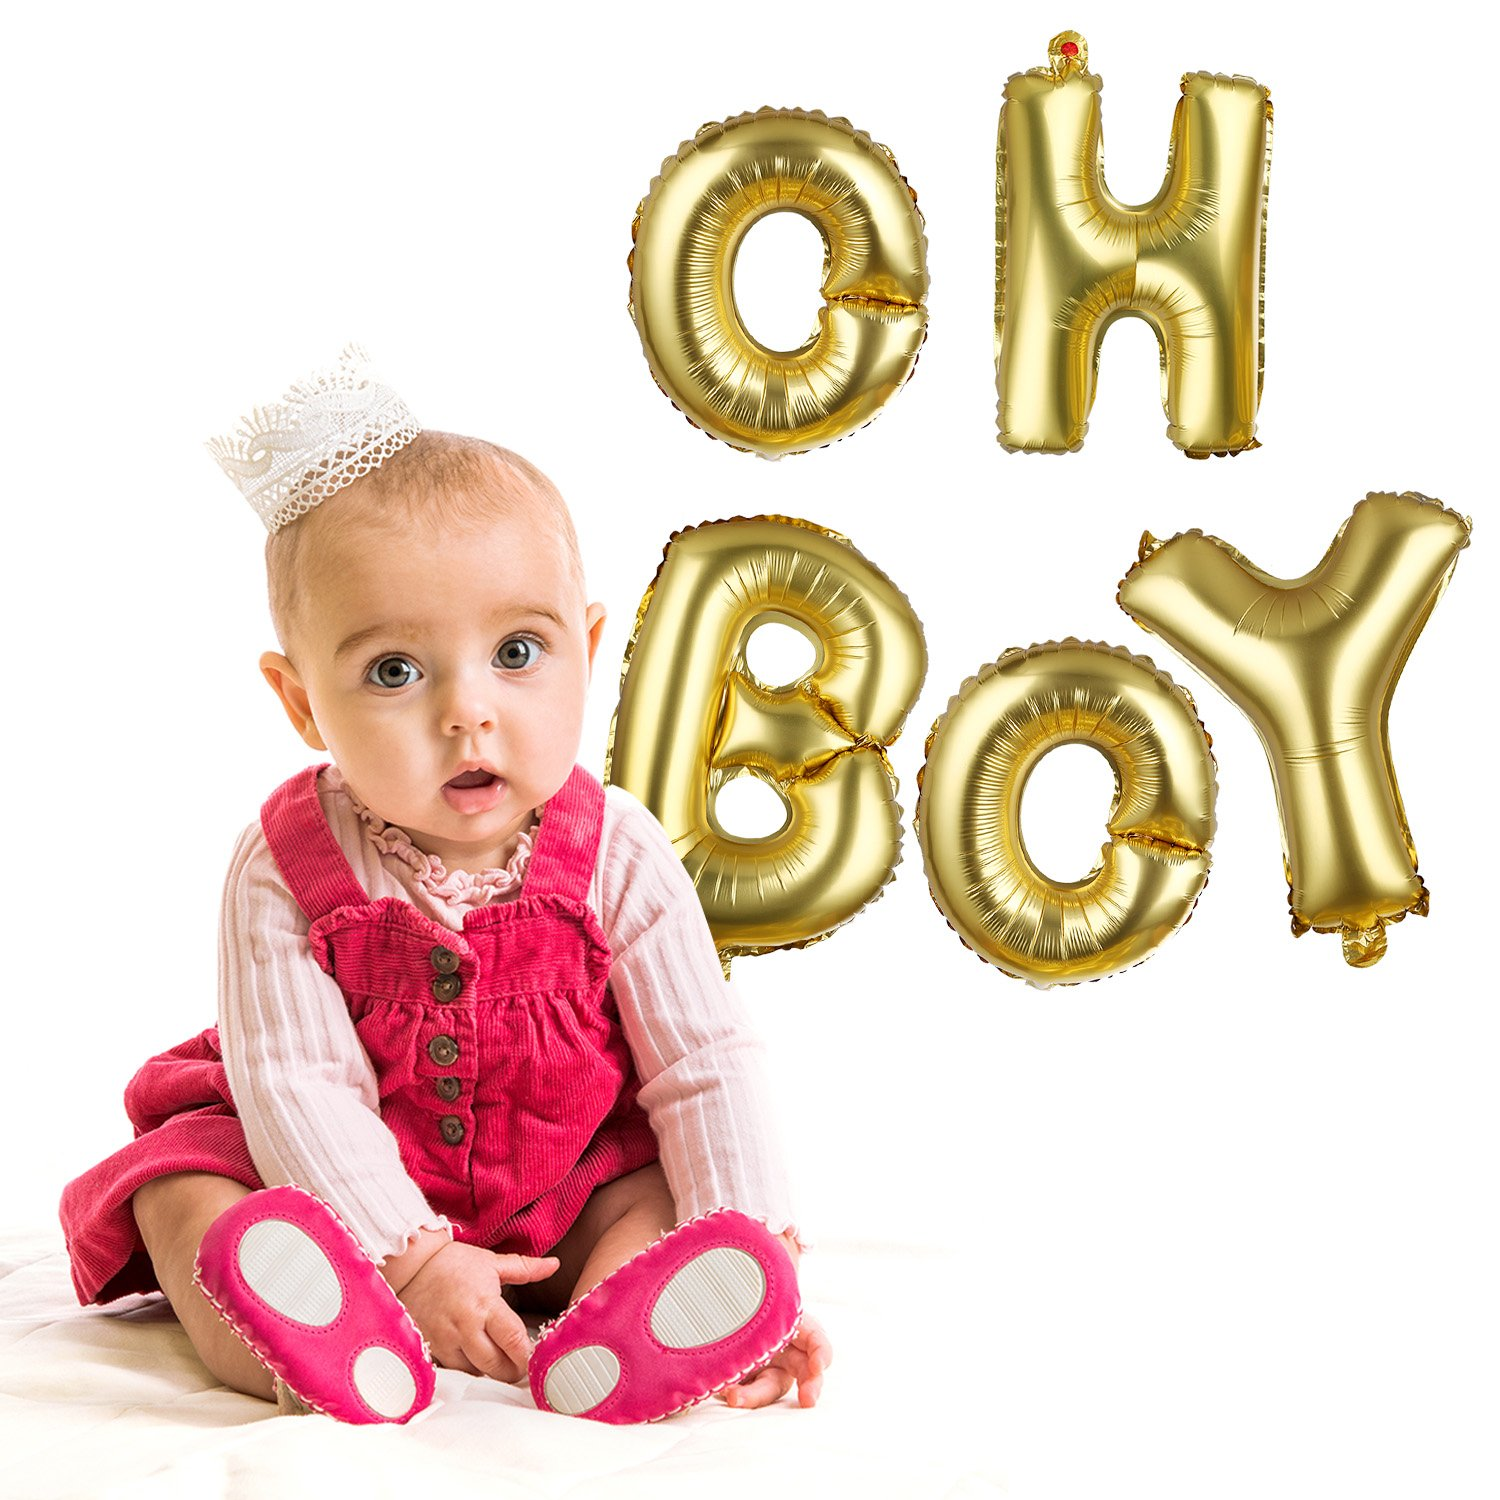 BBTO 2 Pack Oh and Boy Balloons Banners Alphabet Foil Letter Balloon Decoration with Gold Rope for Baby Shower Birthday Party Gender Reveal Party